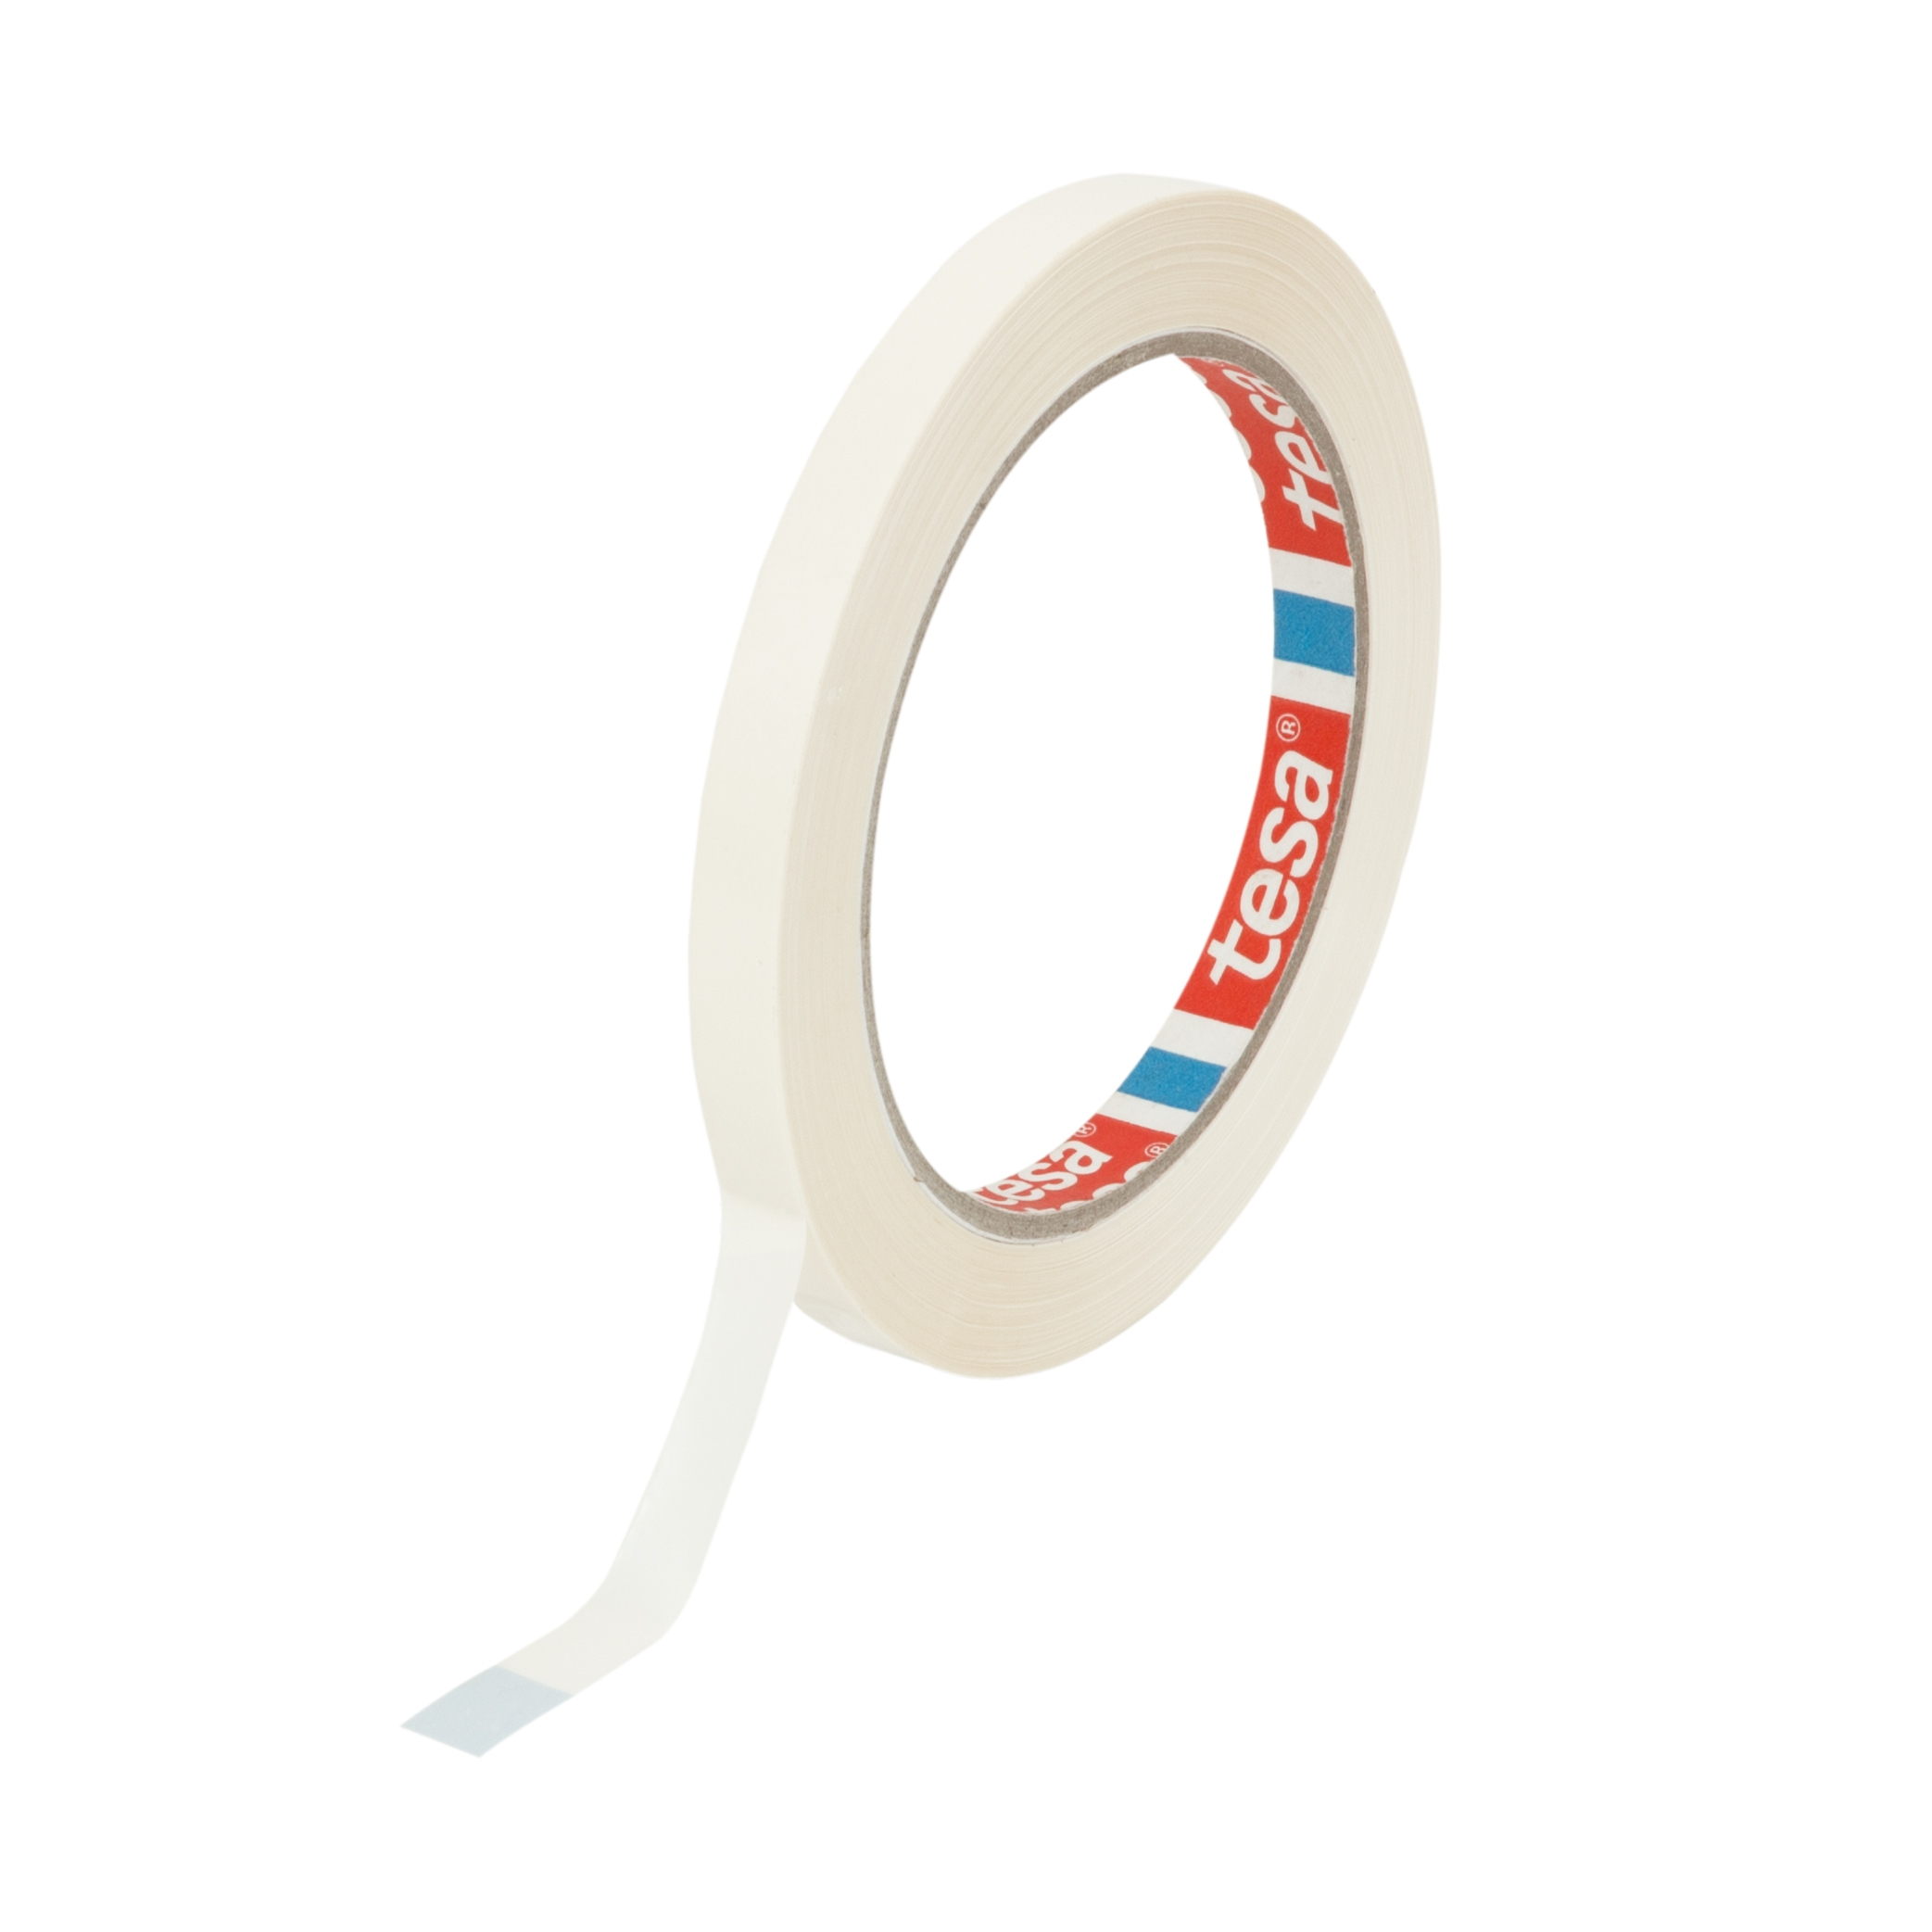 Tesa® tape pvc 4204 wit 9 mm x 66 m